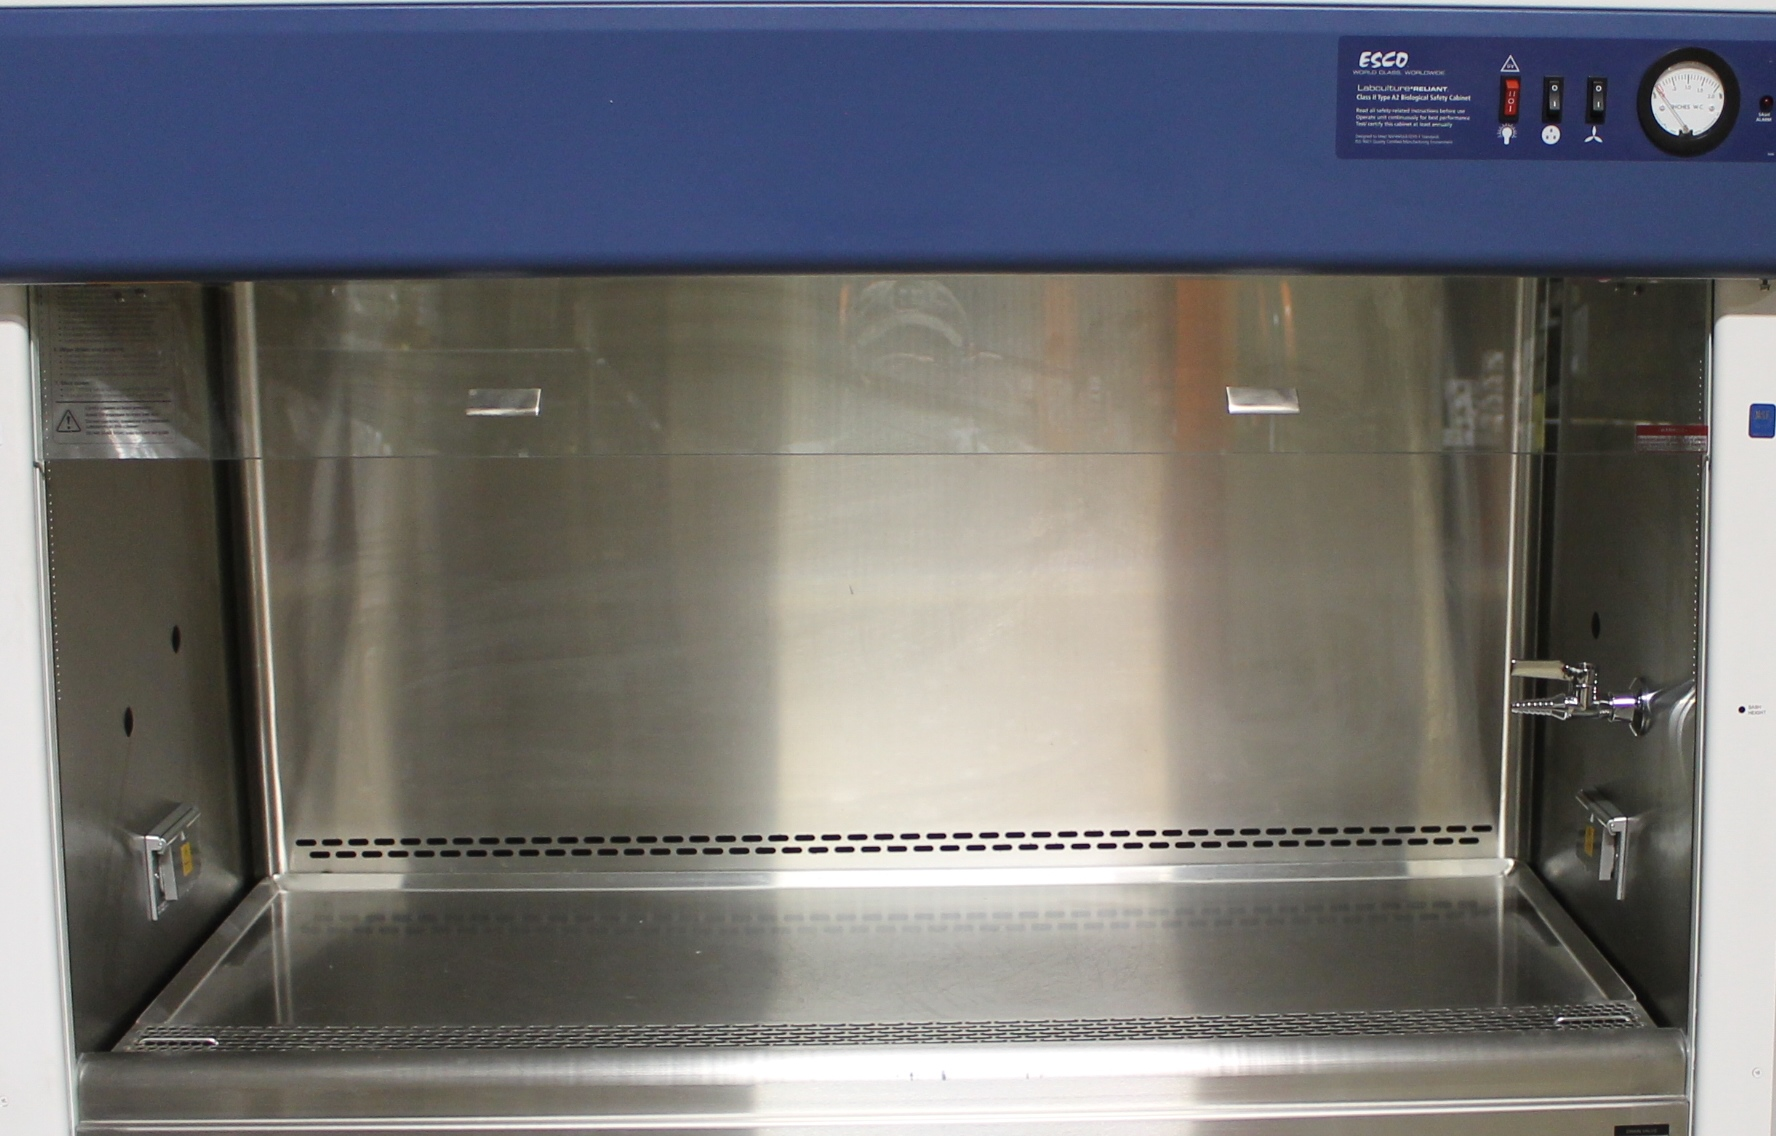 Class Ii Type A2 Biosafety Cabinet Esco 4 Labculture Reliant Class Ii Type A2 Biological Safety